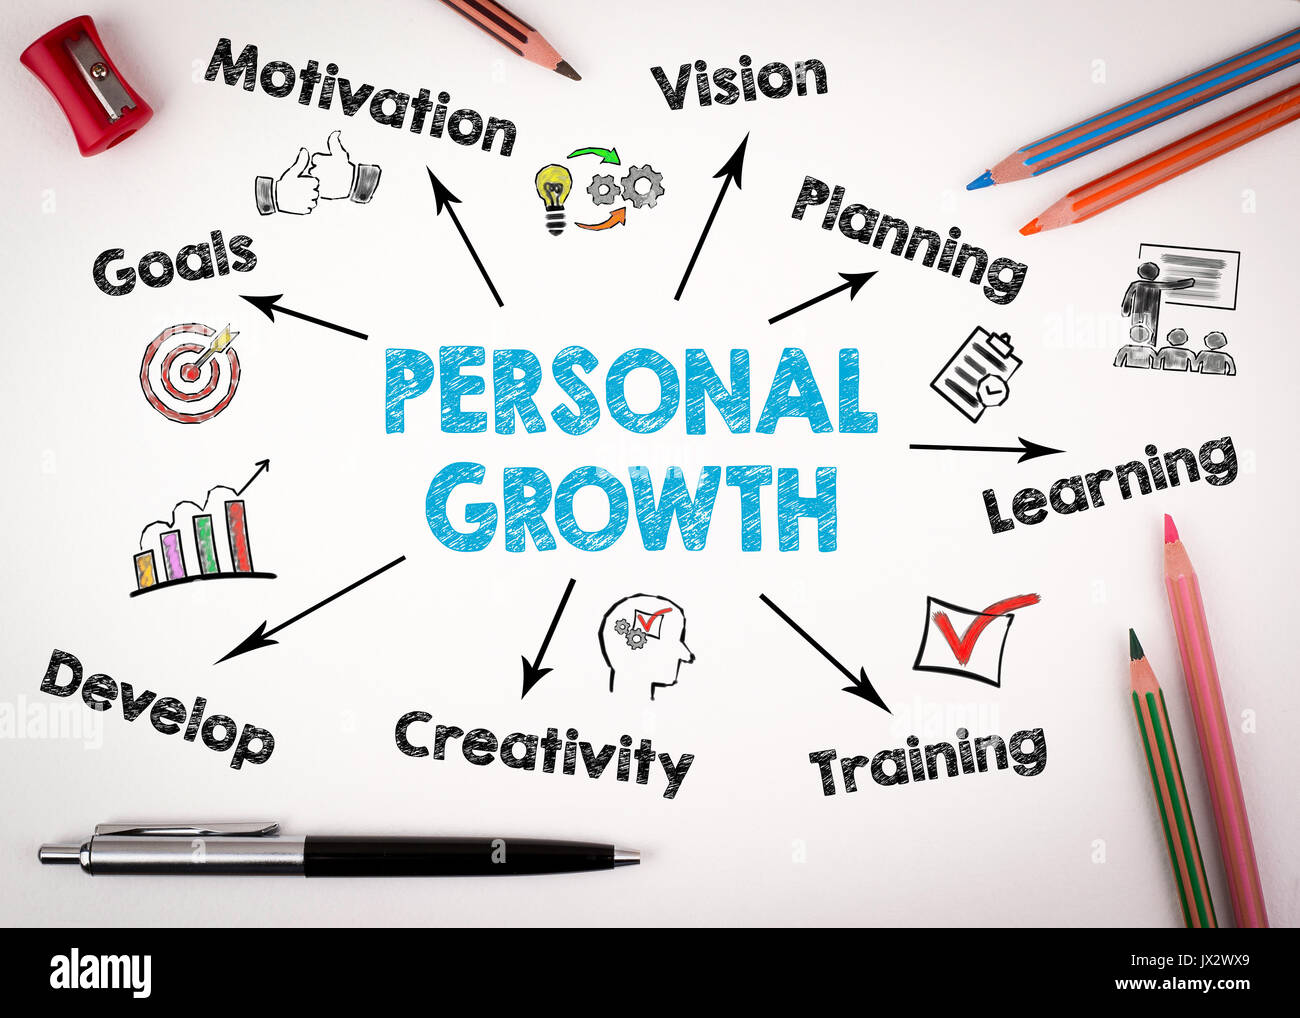 Personal Growth Concept Chart With Keywords And Icons On